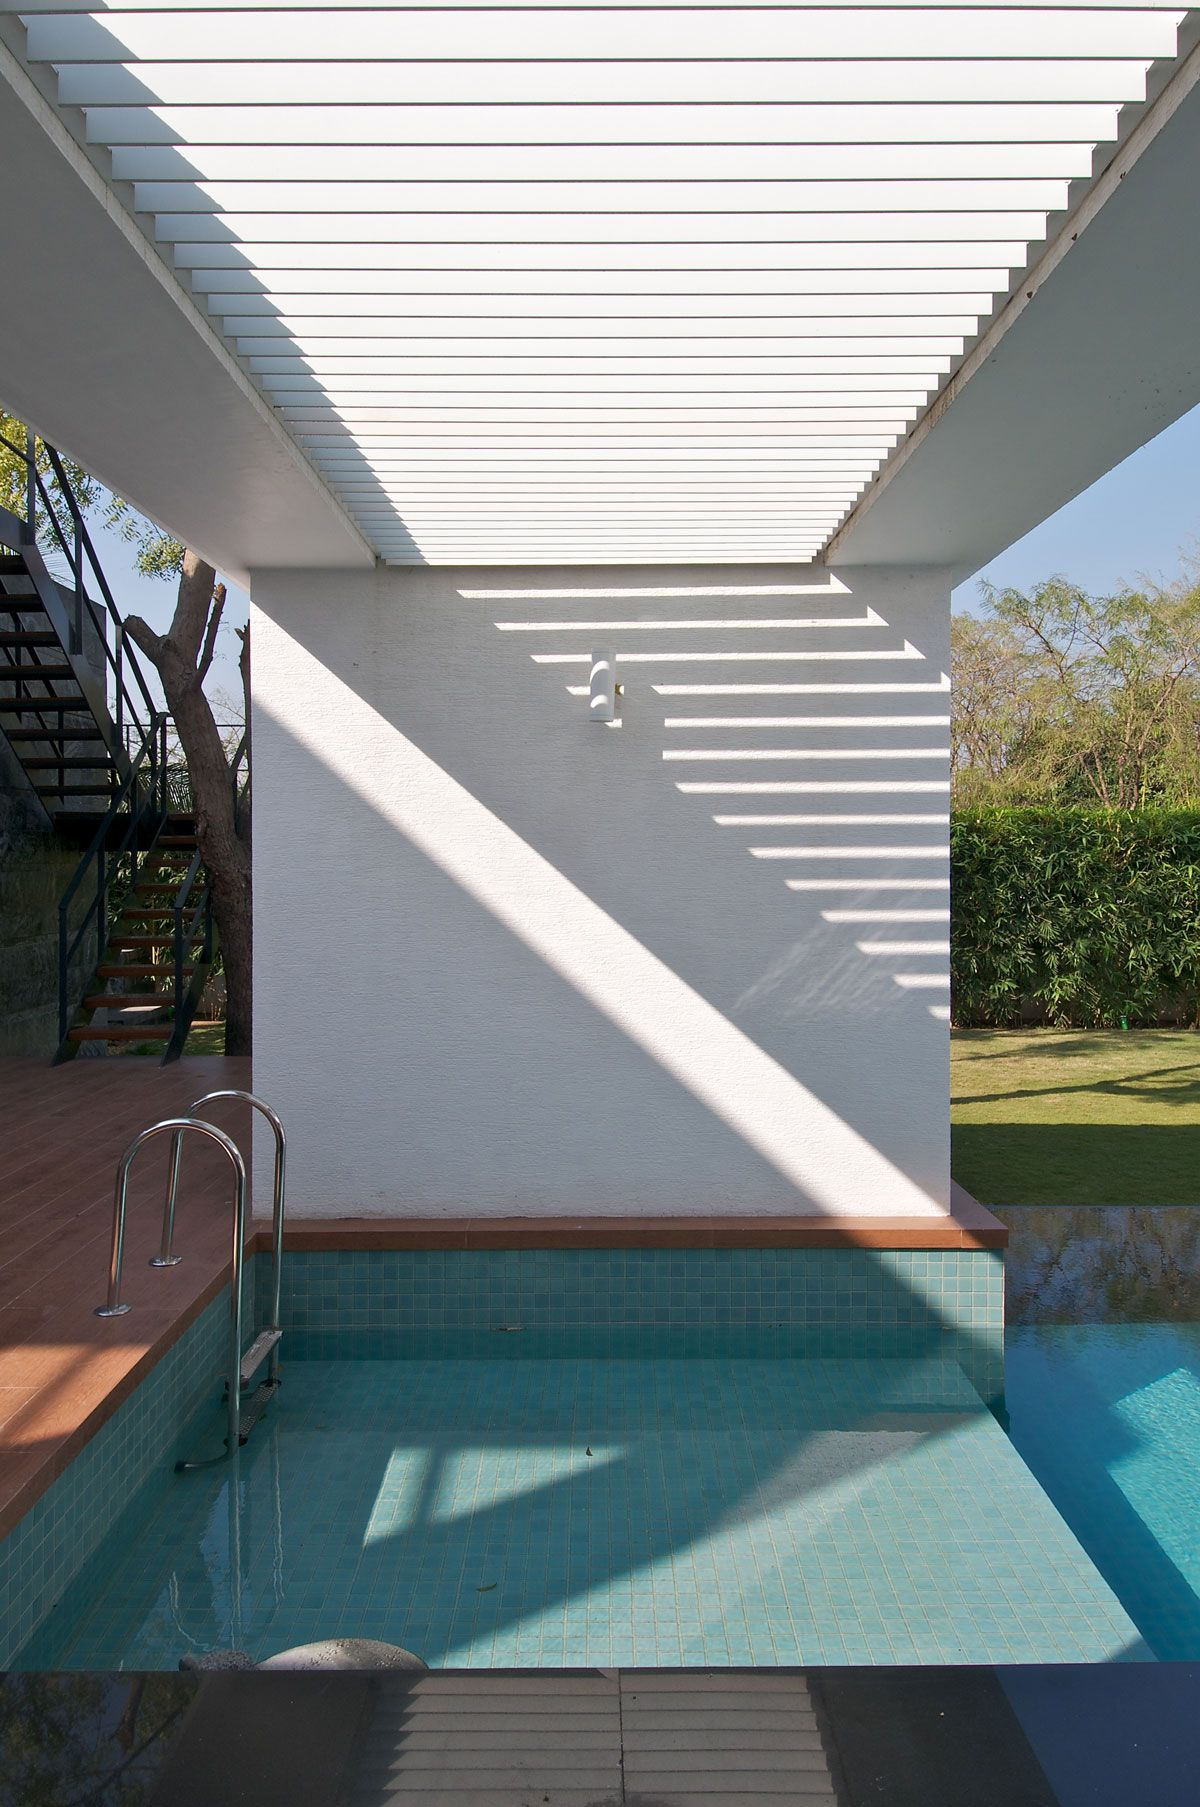 Dinesh-Mills-Bungalow-02-3